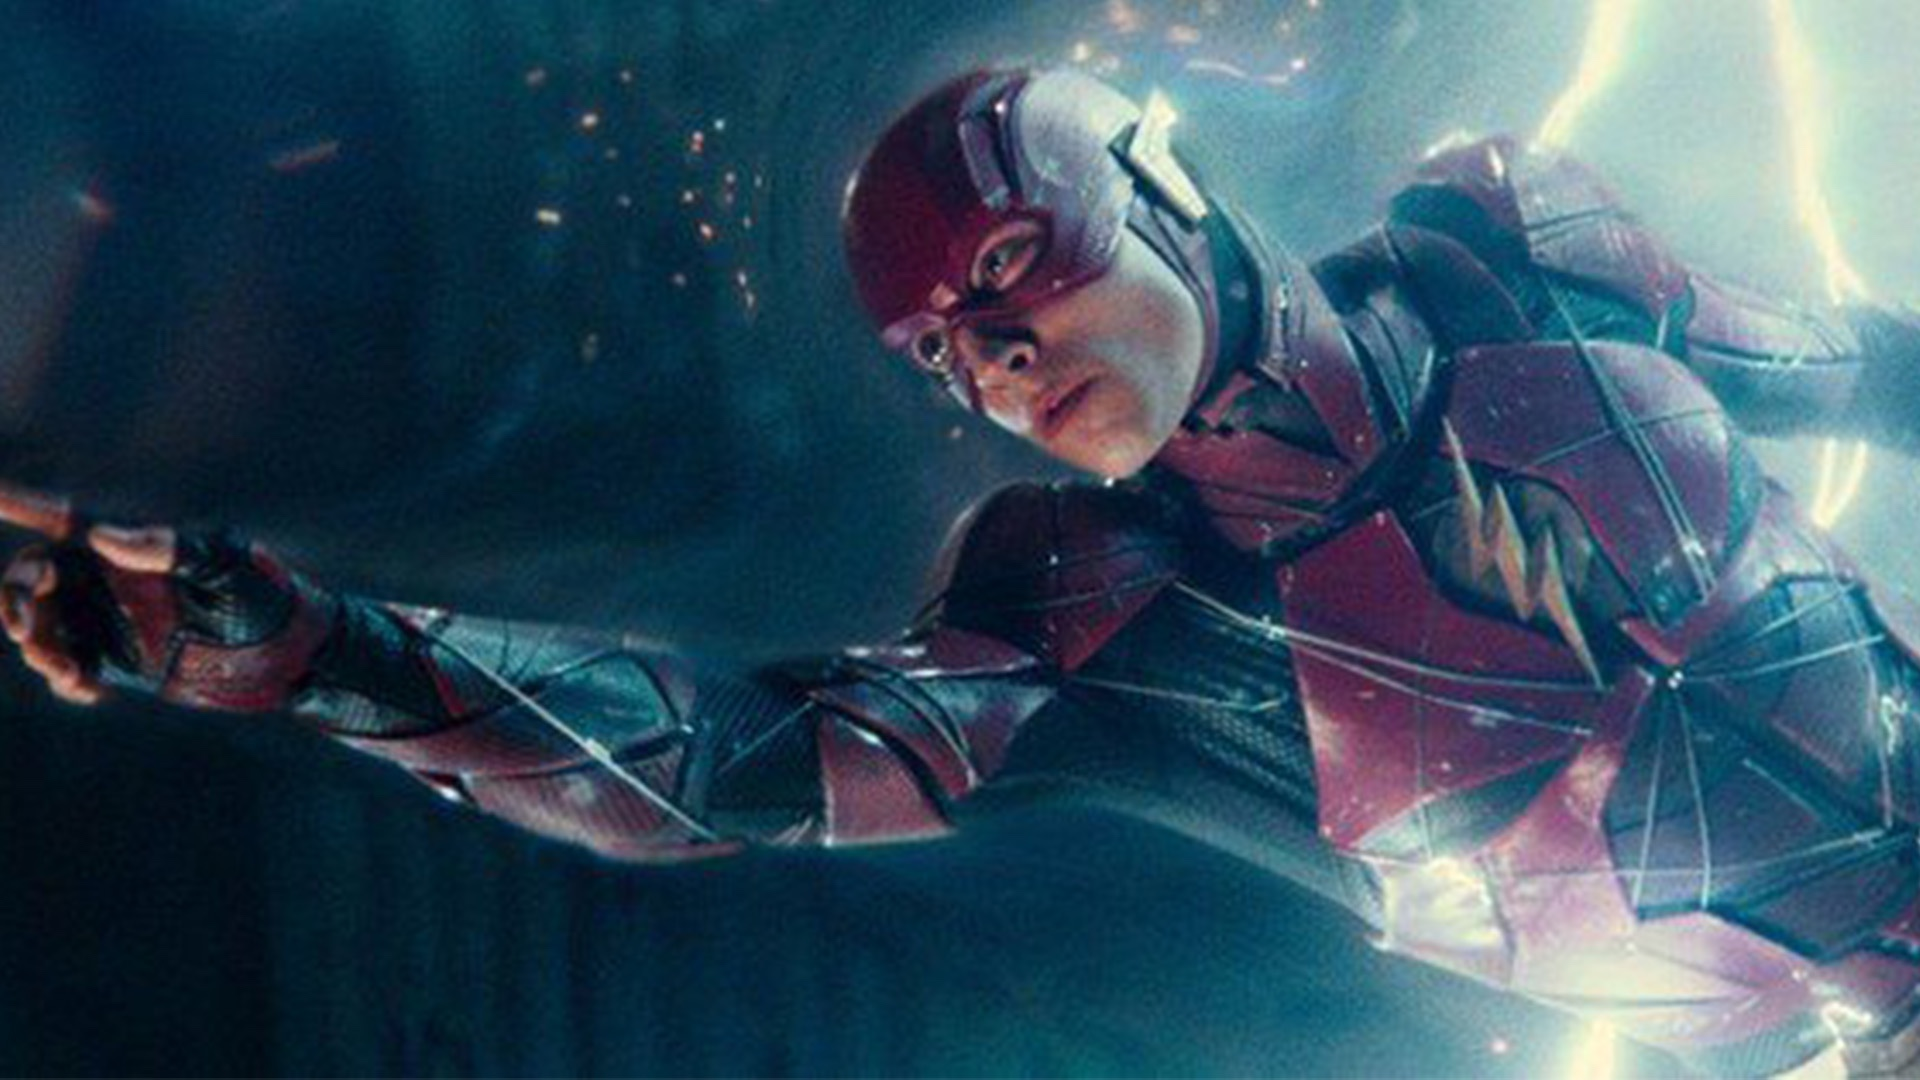 it-director-andy-muschietti-confirms-the-flash-is-his-next-movie-and-he-calls-it-a-beautiful-human-story-social.jpg